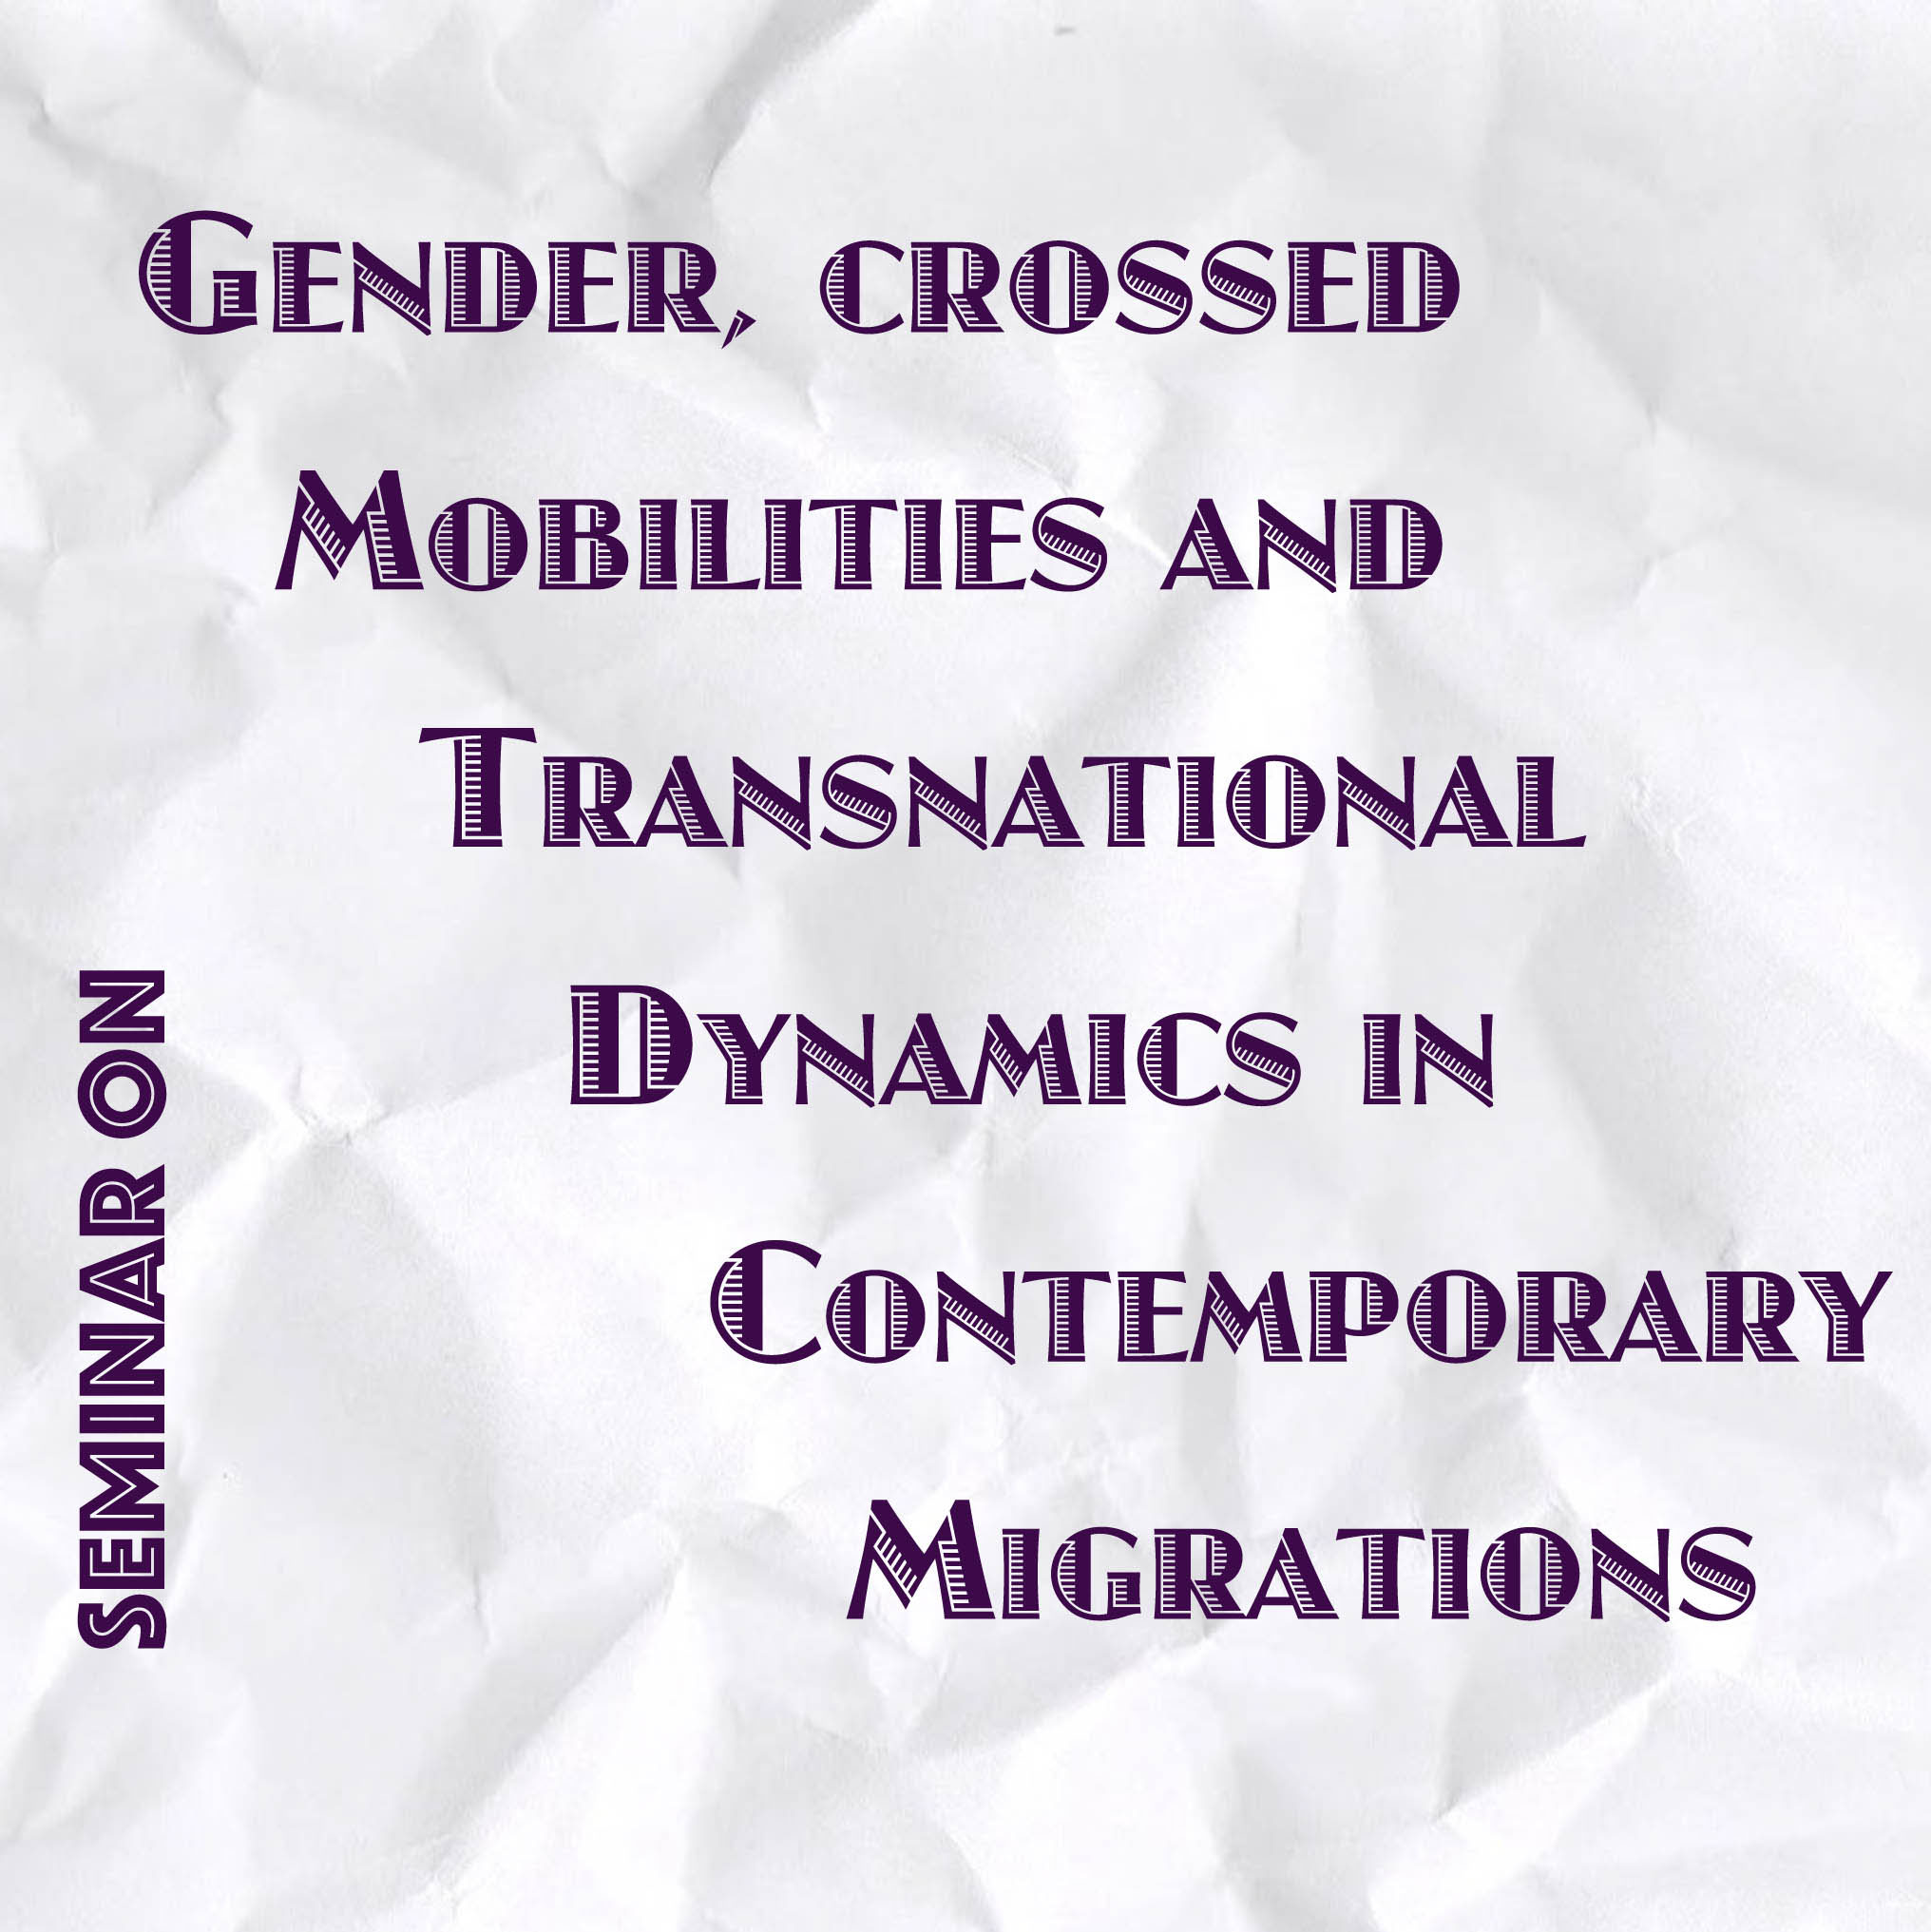 Gender, crossed mobilities and transnational dynamics in contemporary migrations